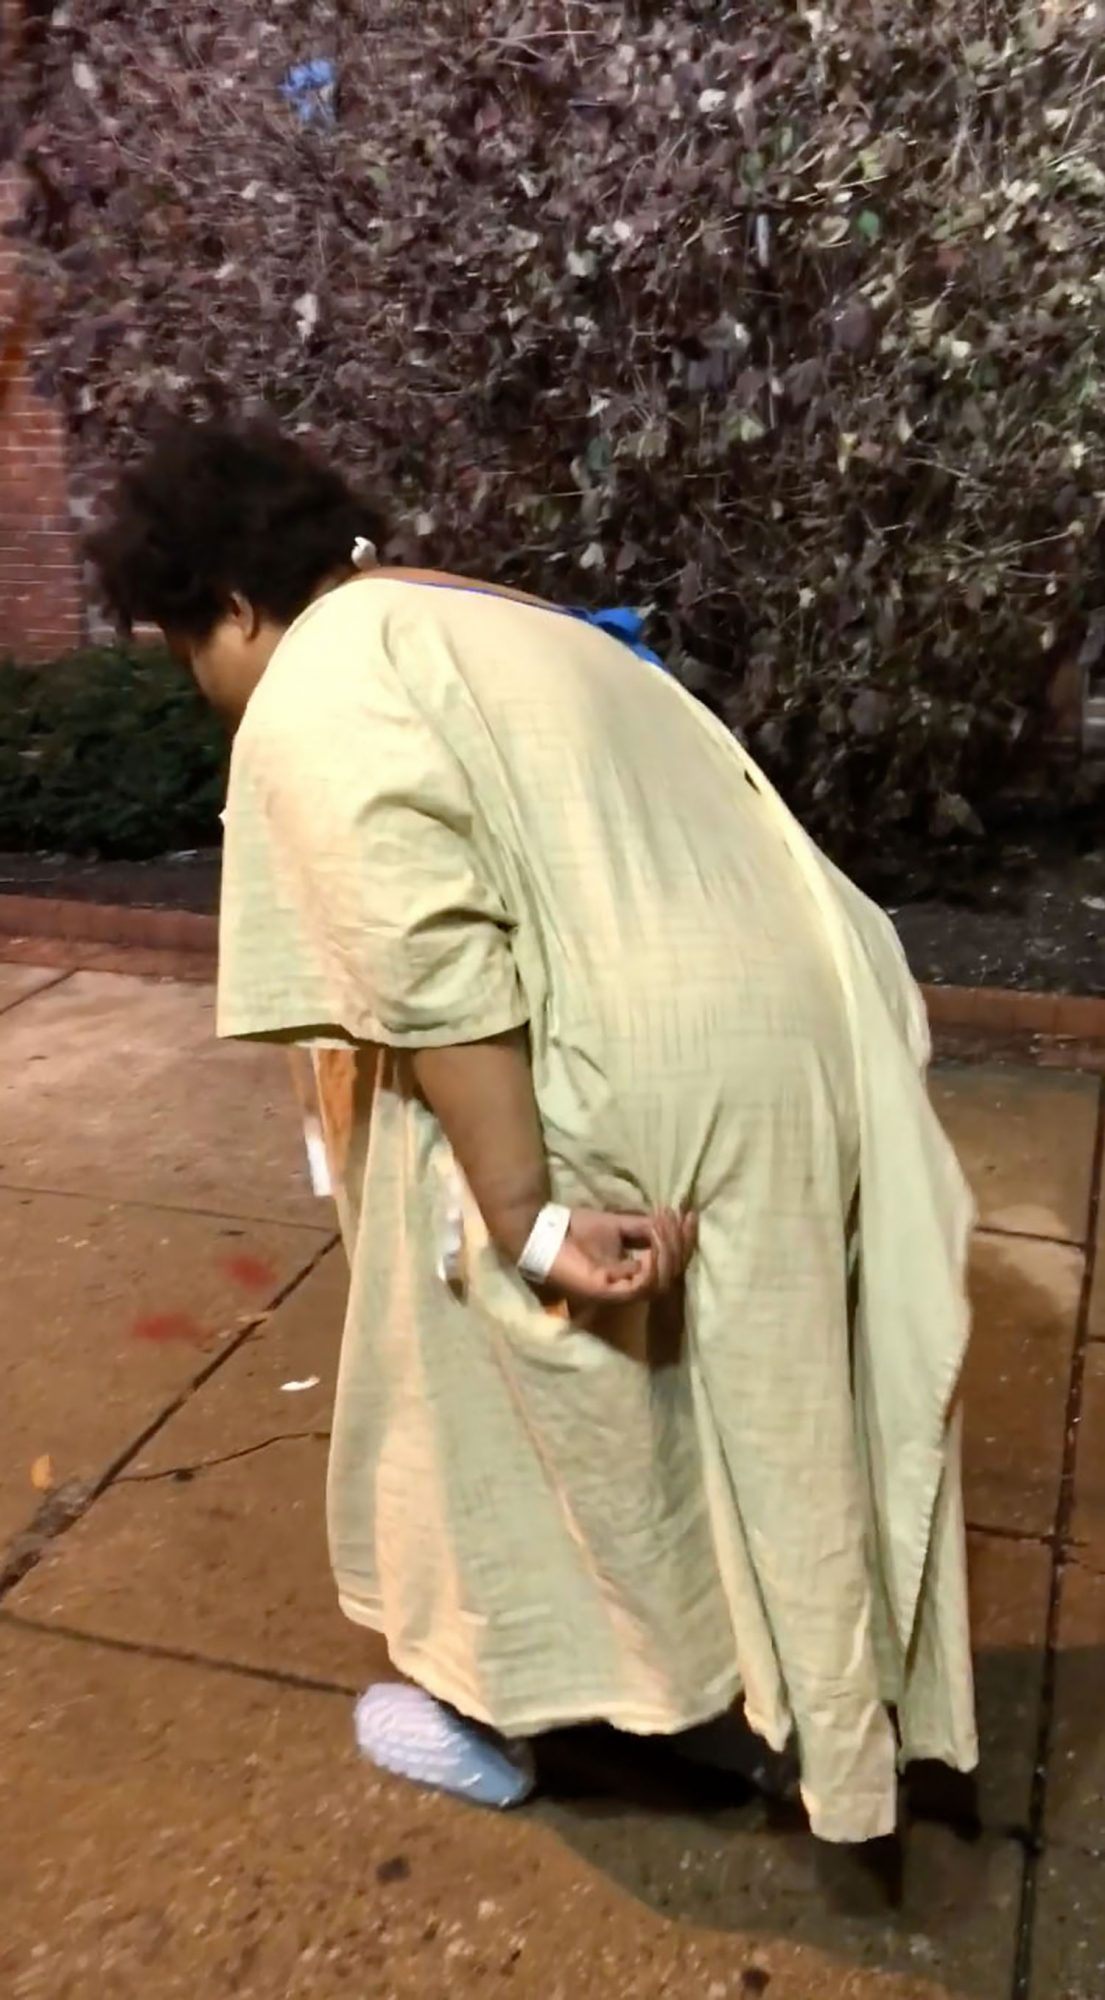 Video Shows Baltimore Hospital Staff 'Dumping' Patient Outside in the Cold: 'This Is Disgusting!'